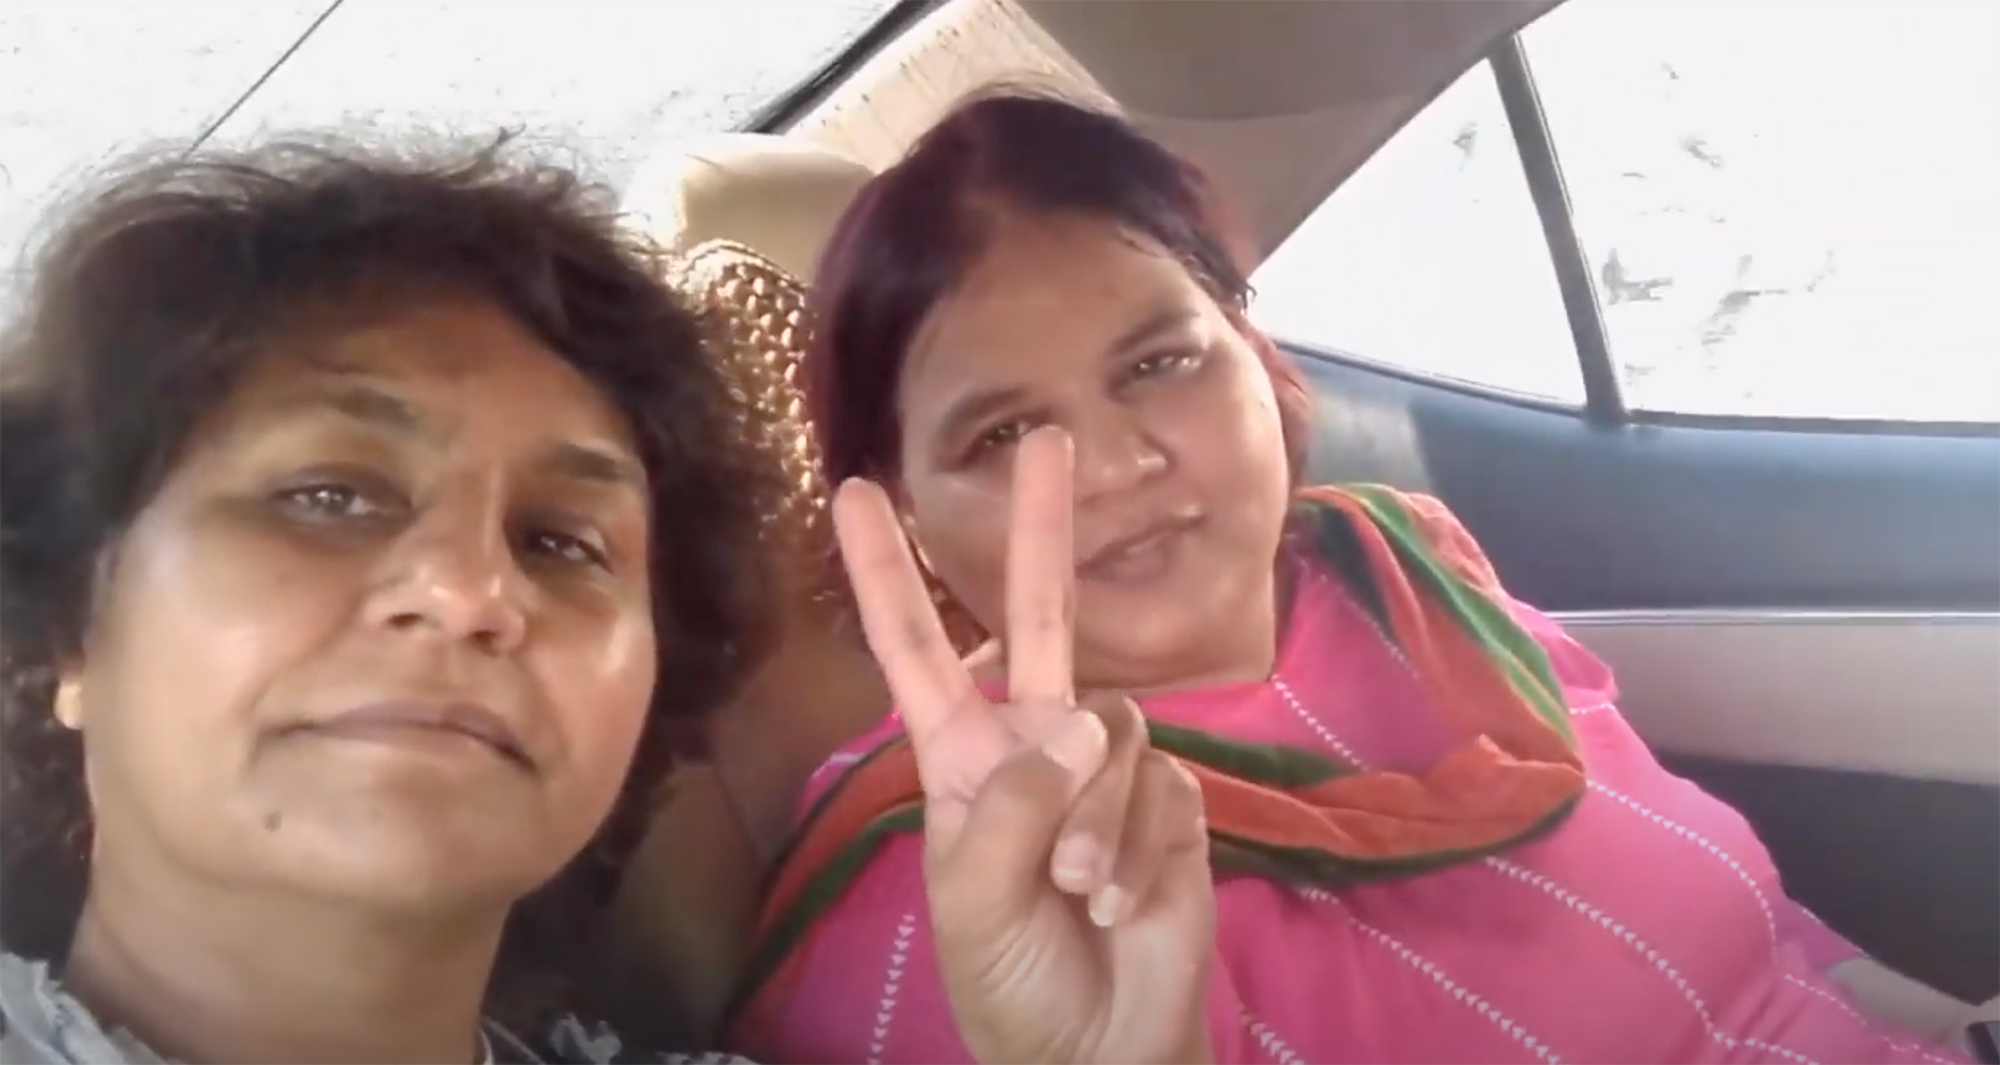 Two women in car. One making the peace-sign with her hand.